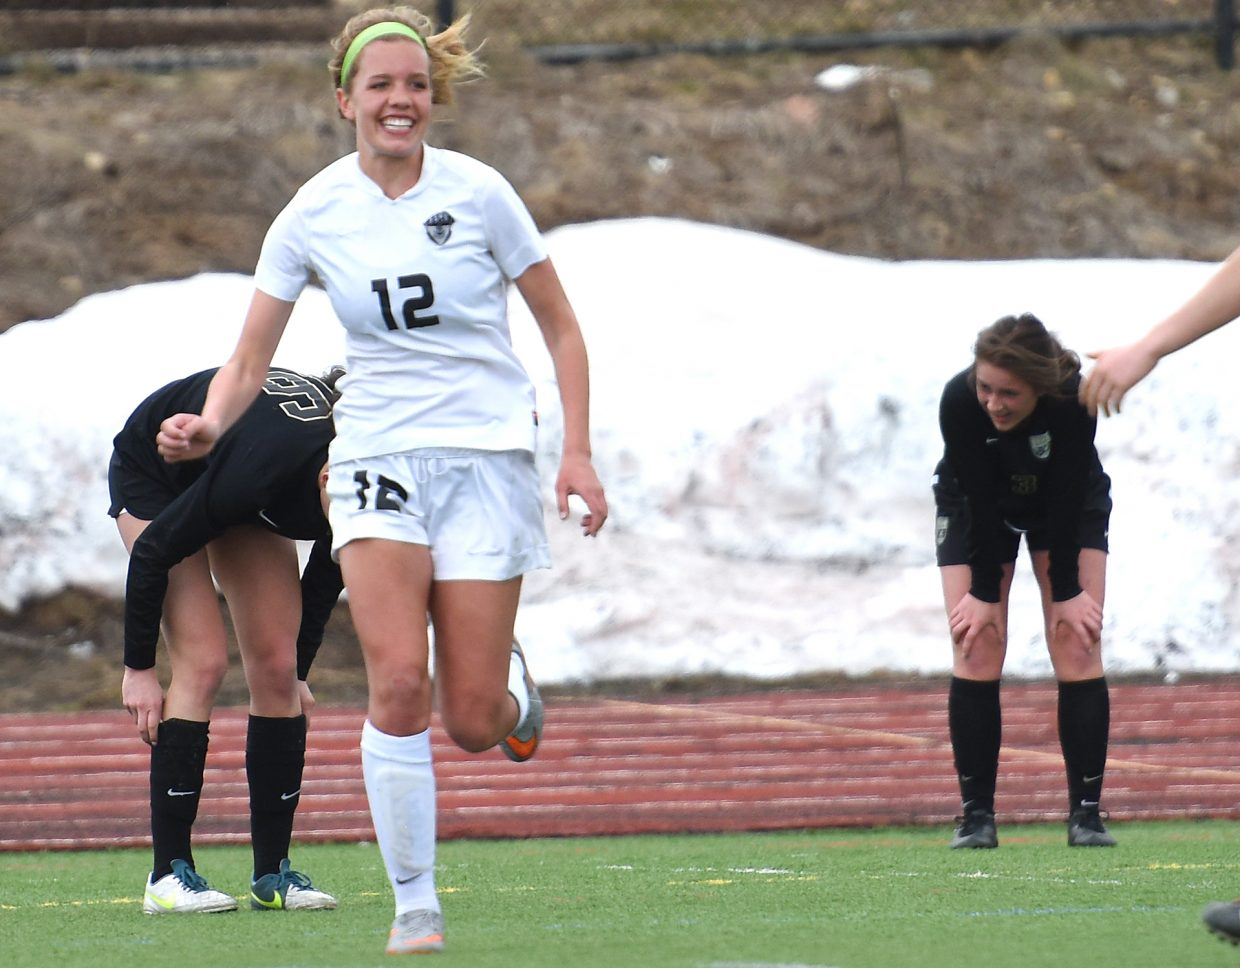 Steamboat senior Natalie Bohlmann celebrates after dishing an assist on a goal in a 5-0 win against Battle Mountain.